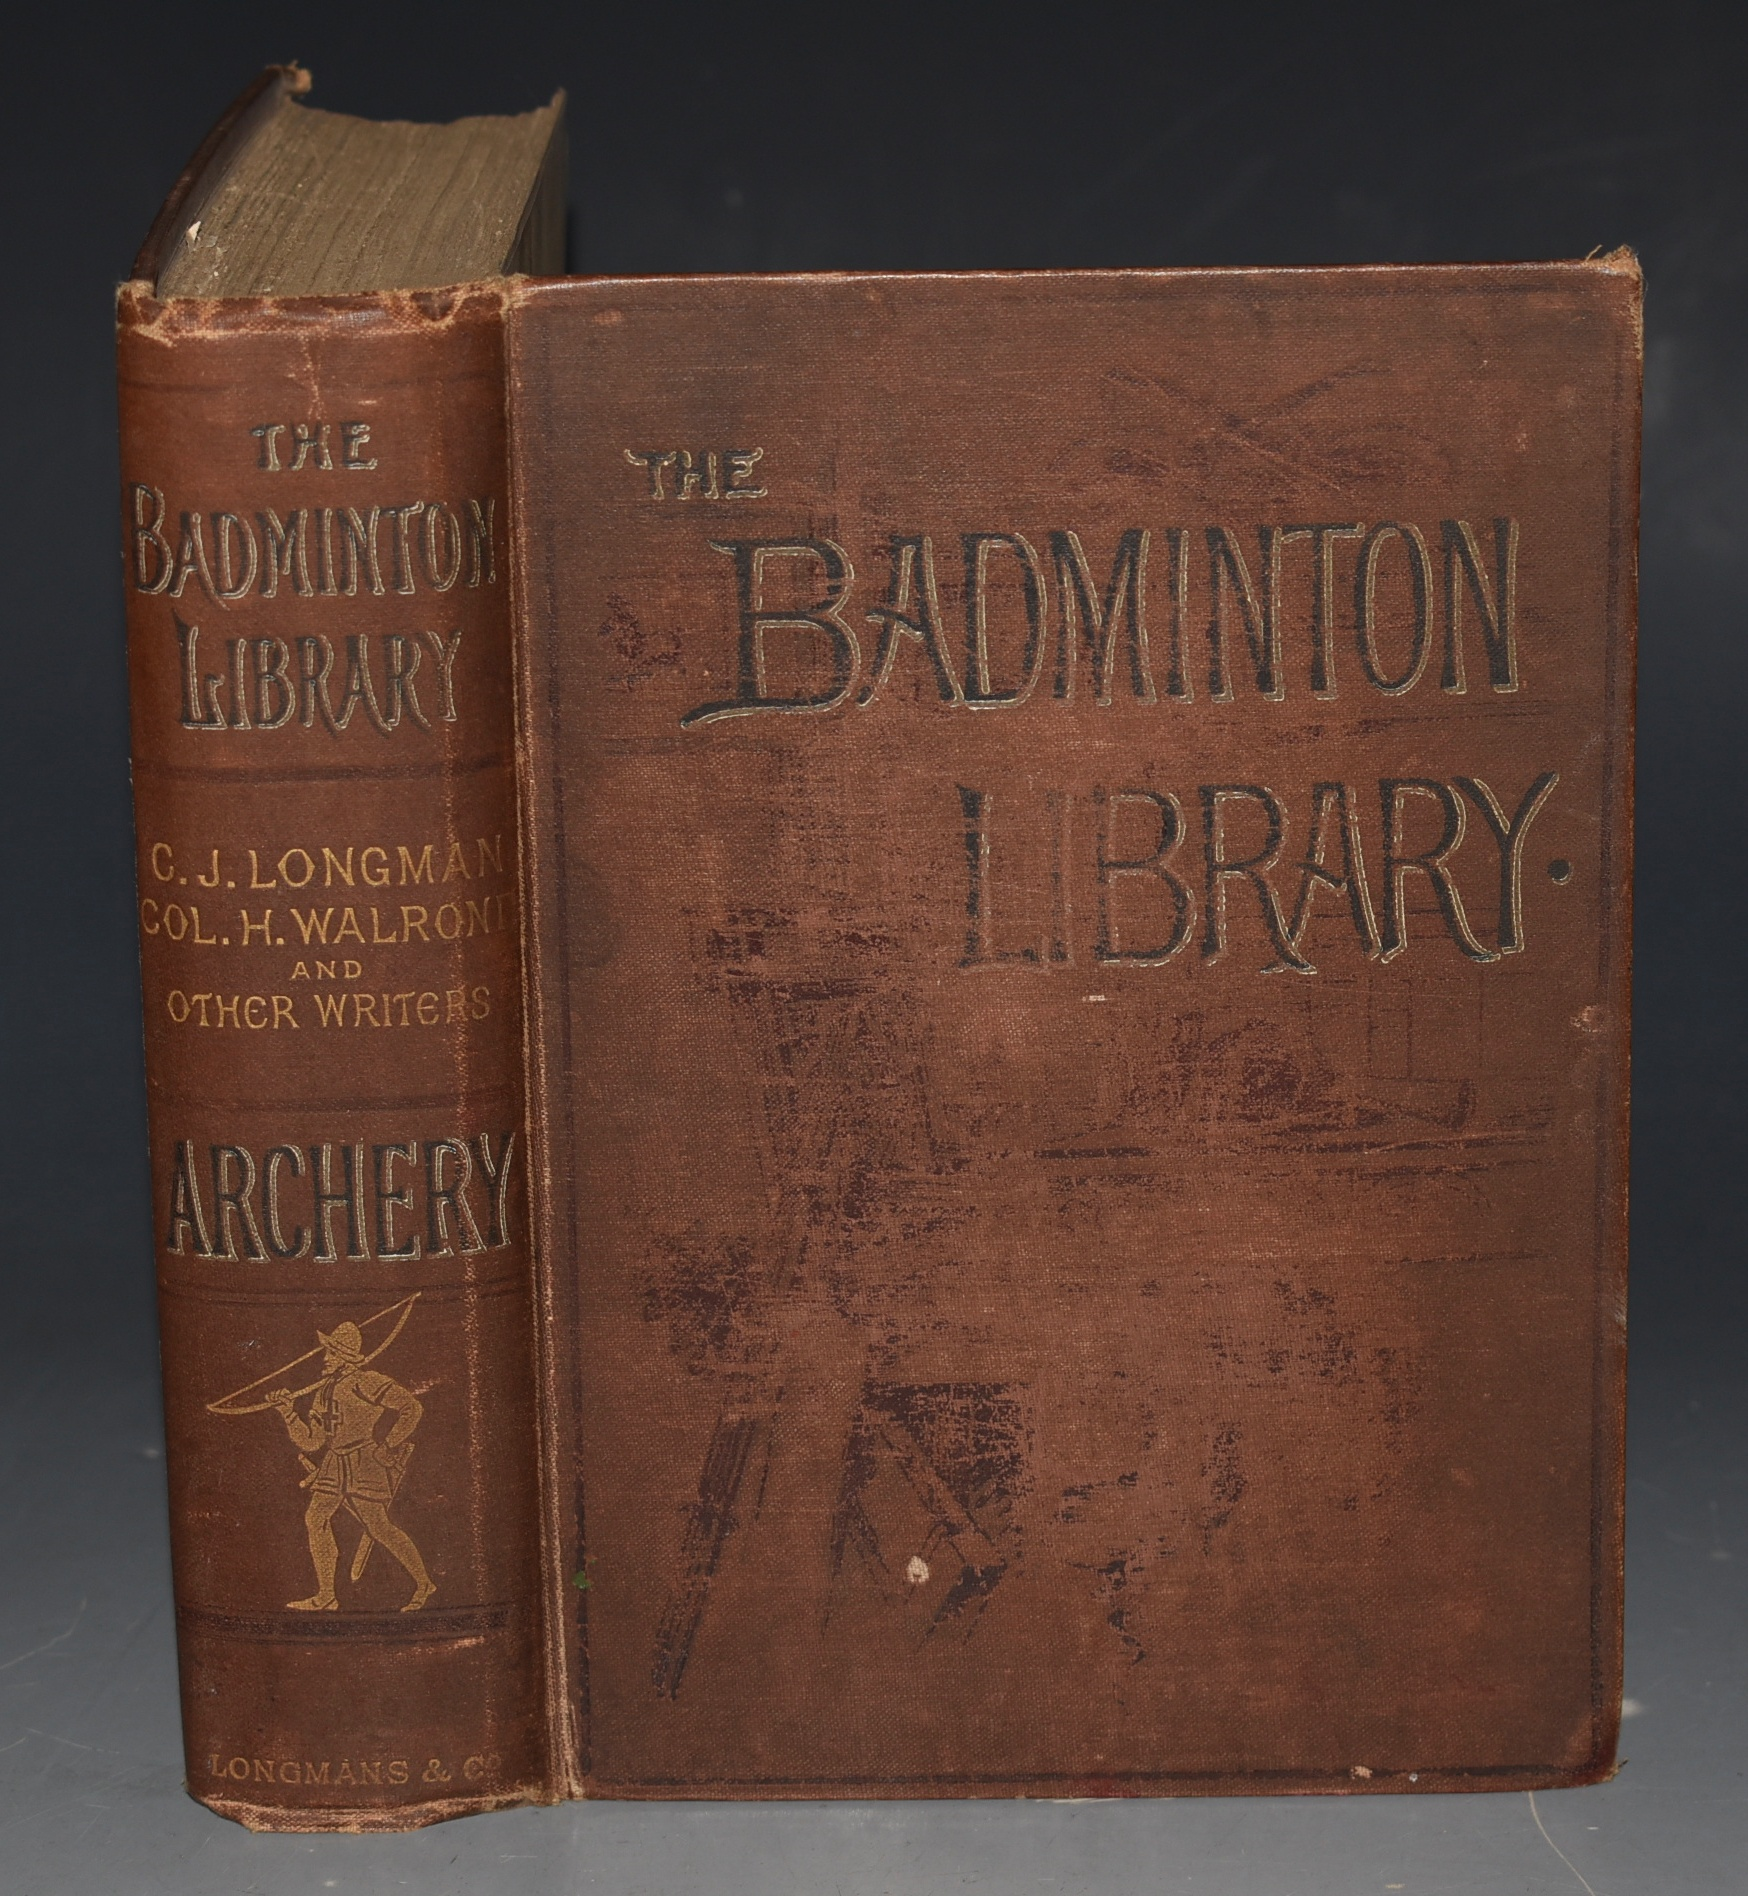 Image for Archery. The Badminton Library. With contributions by Legh, Dillon, Hawkins Fisher, Hussey, Bedford, Balfour Paul, Maxon. With Numerous Illustrations. Reissue.